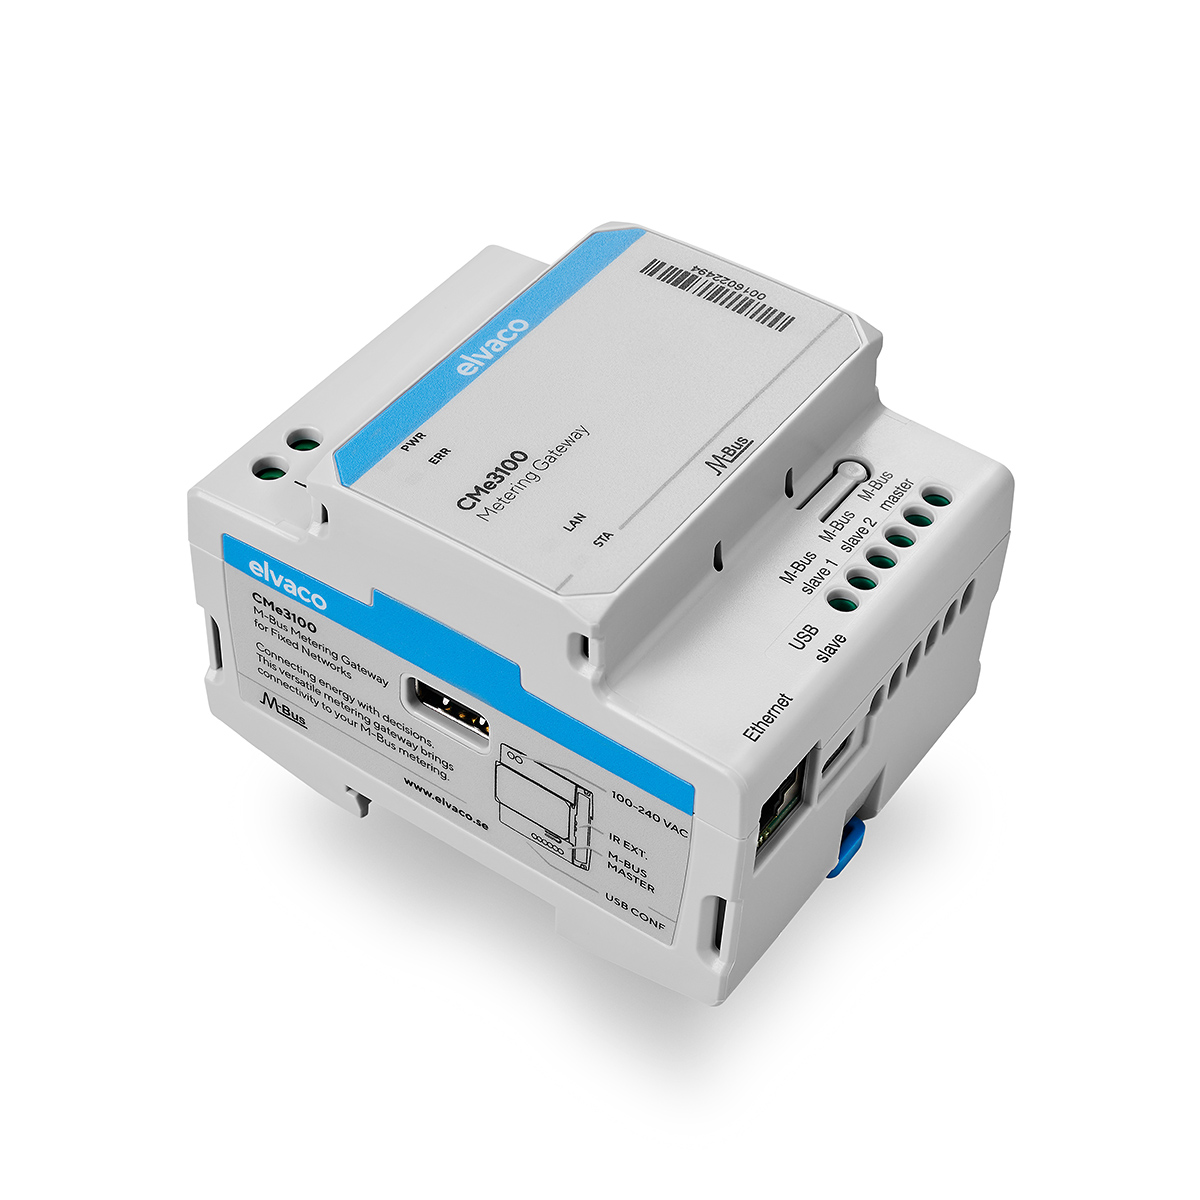 CMe3100 - M-Bus Metering Gateway for Fixed Network